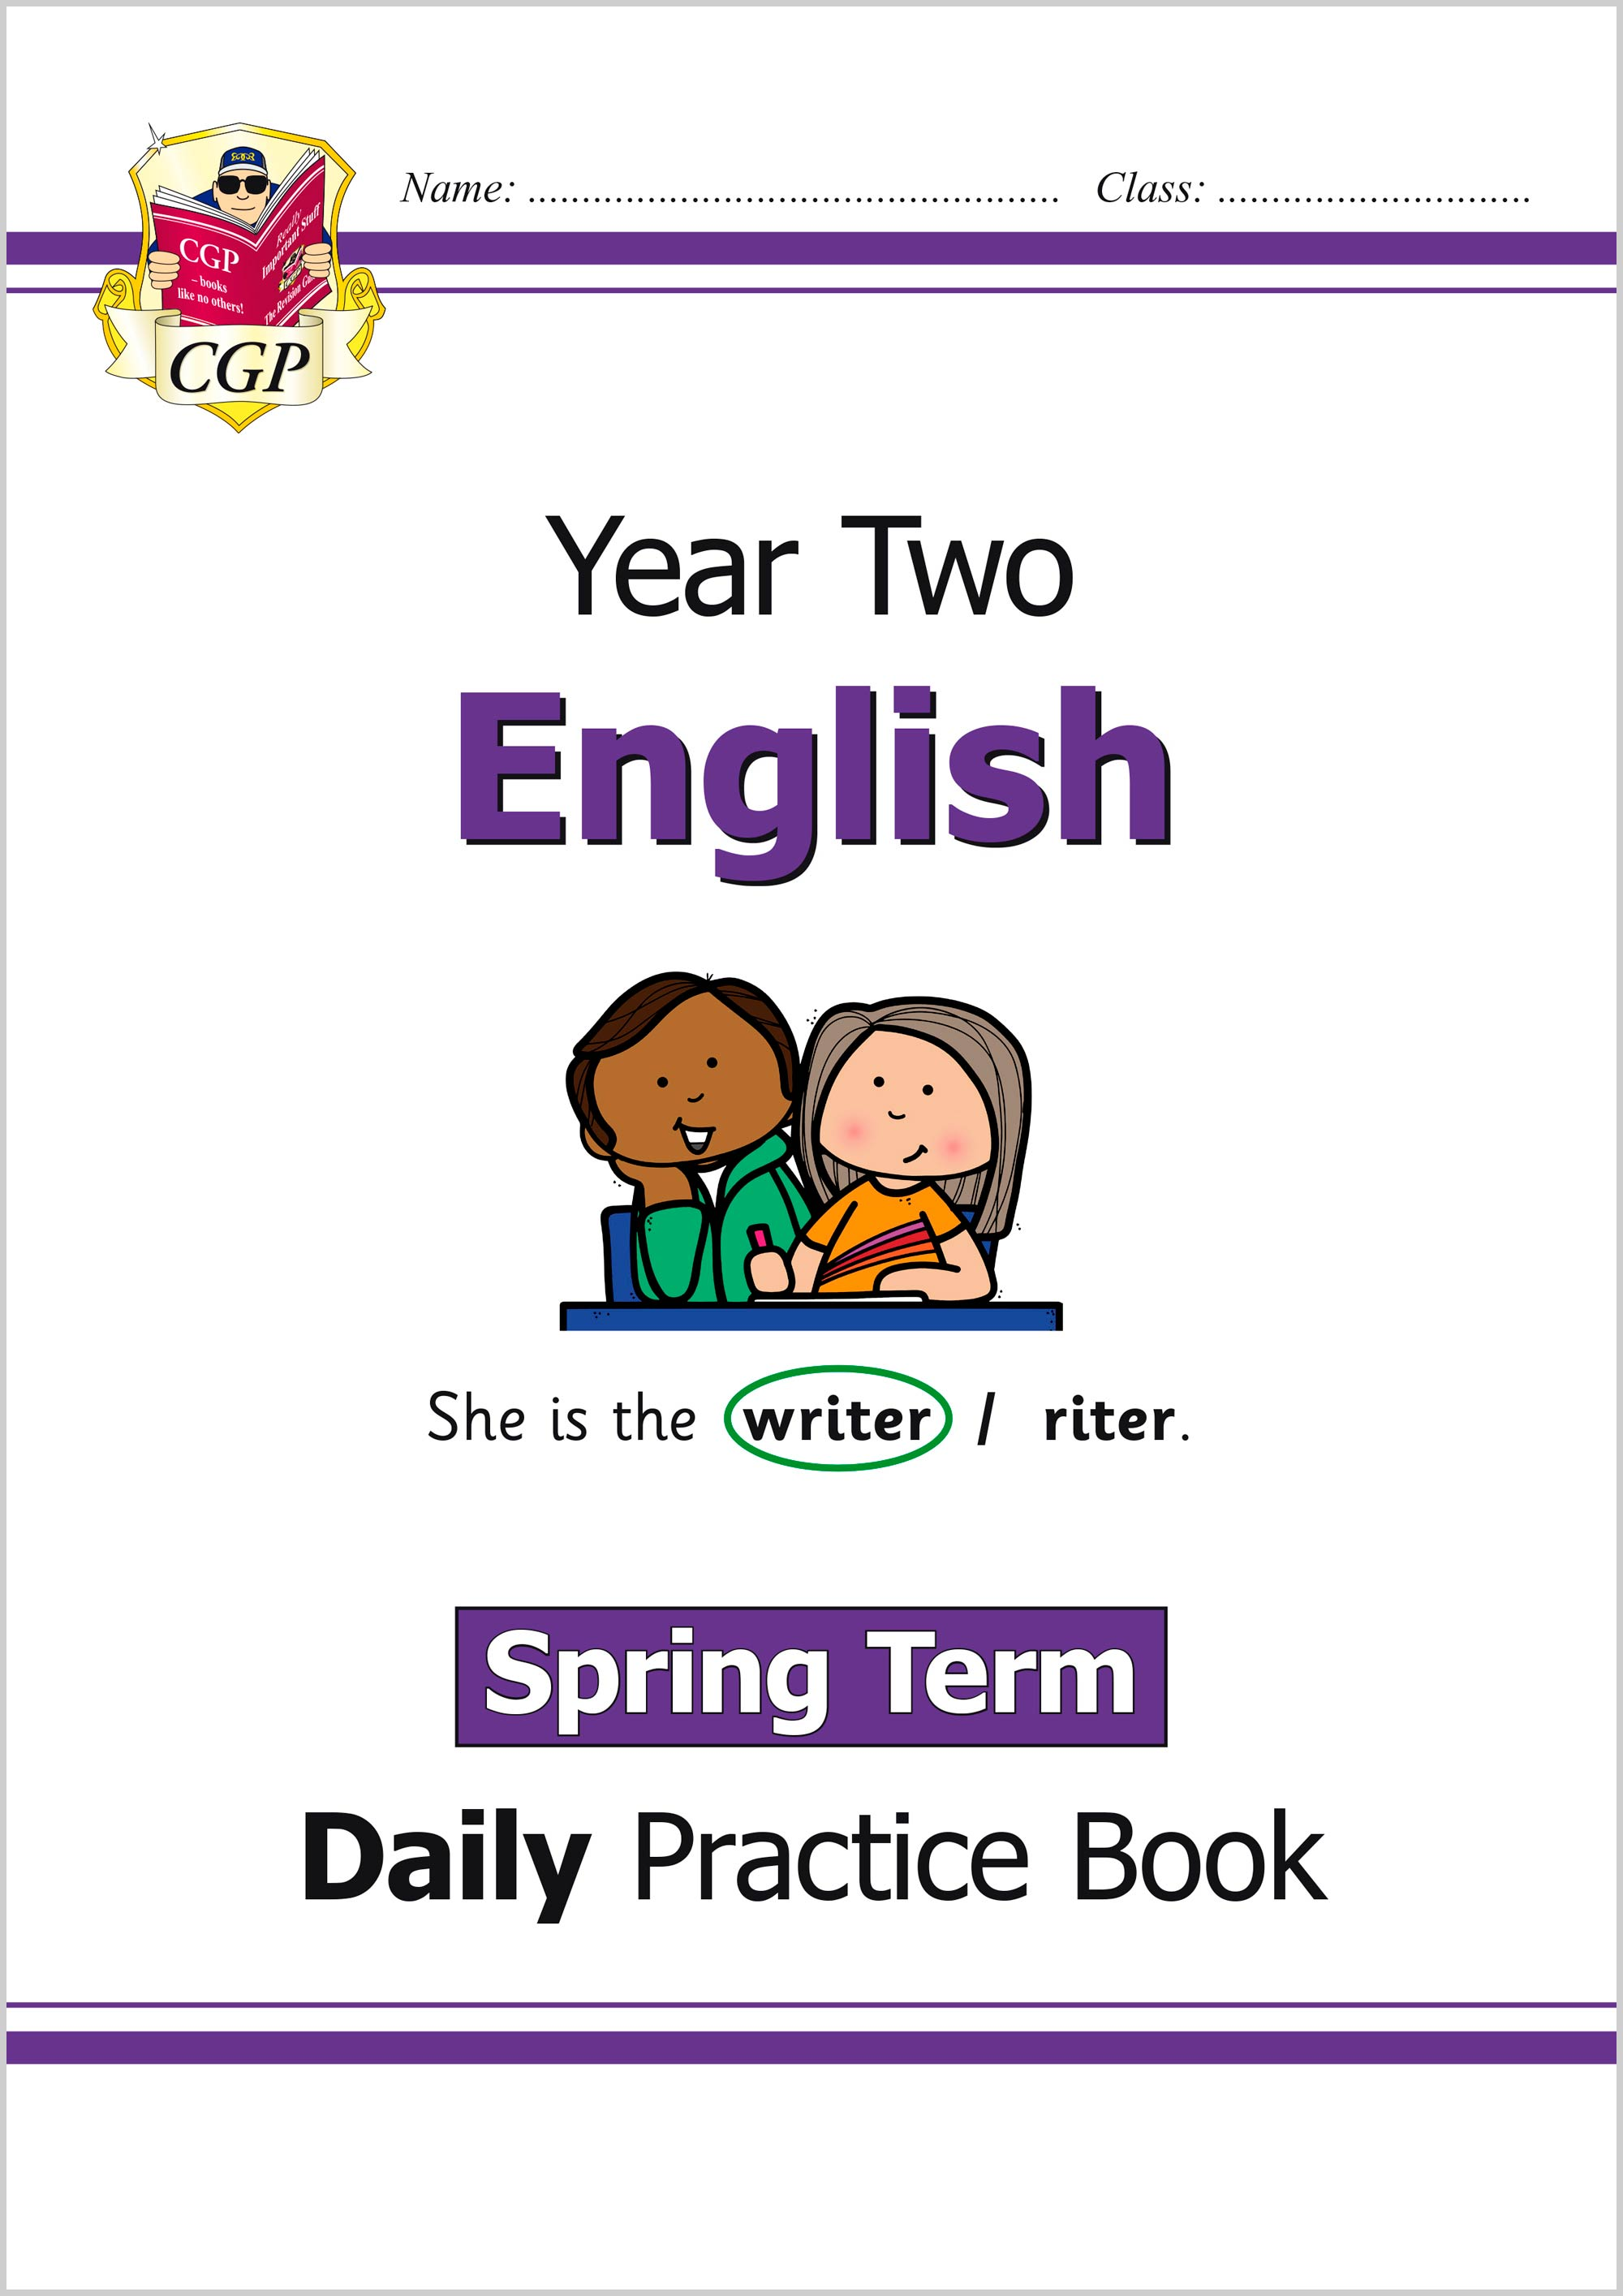 E2WSP11 - New KS1 English Daily Practice Book: Year 2 - Spring Term